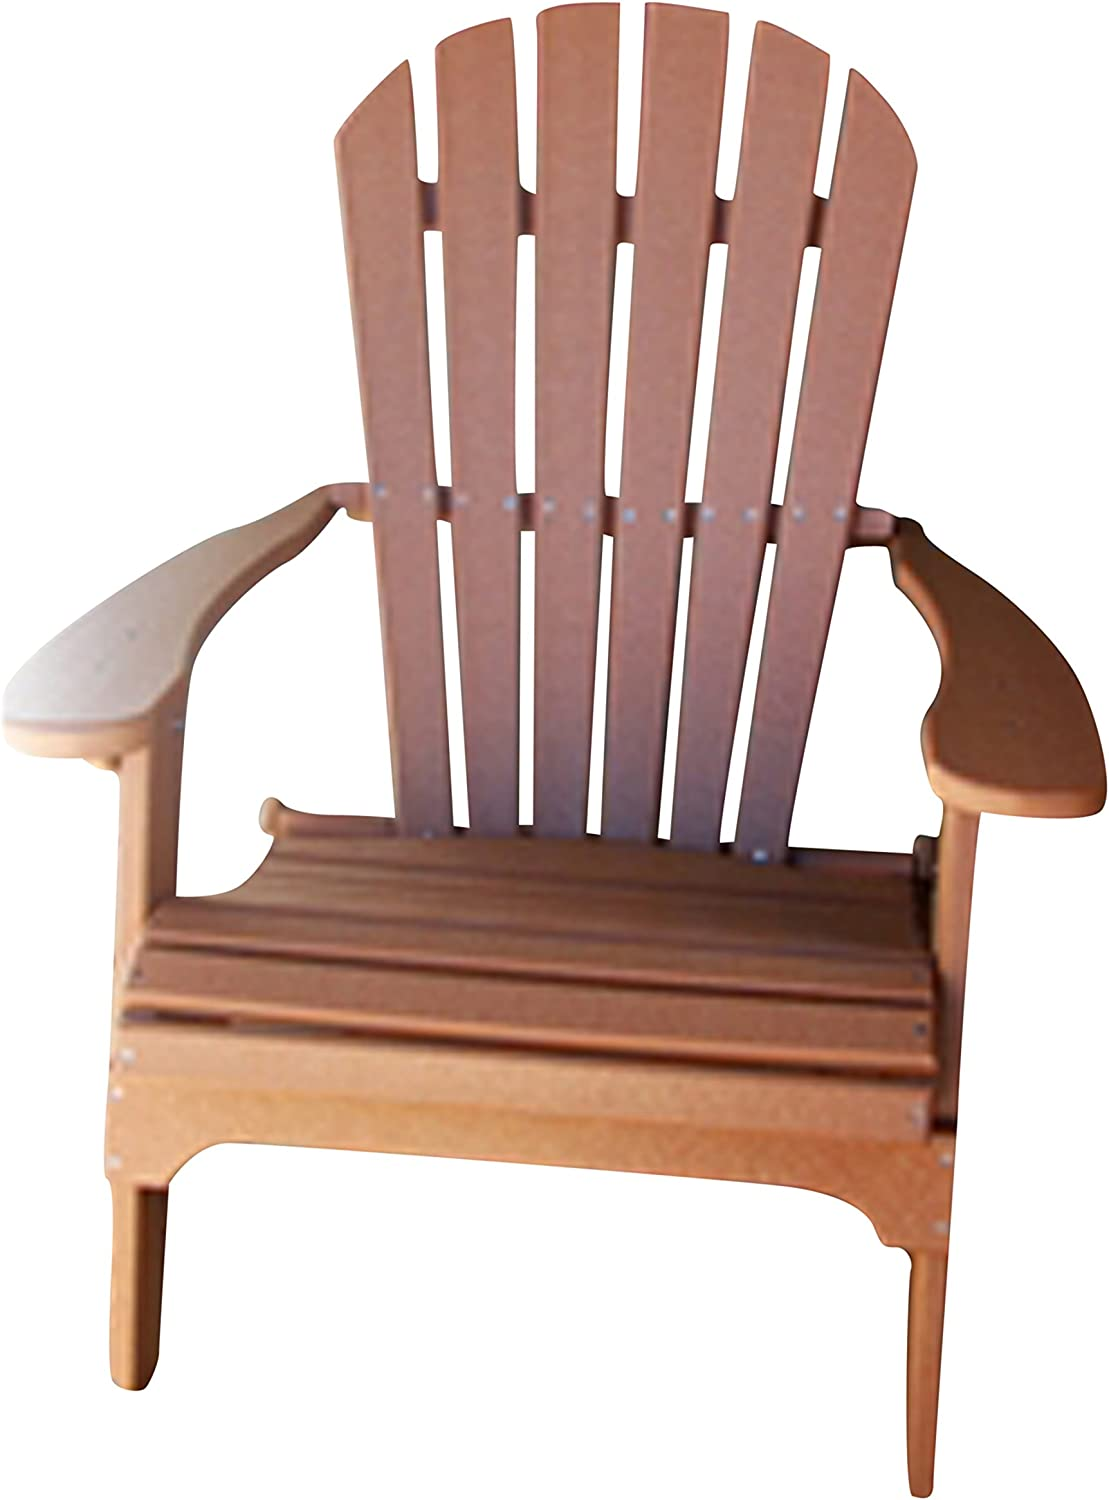 Phat Tommy Recycled Poly Resin Folding Adirondack Chair – Durable and Eco-Friendly Patio Furniture Armchair, Tan